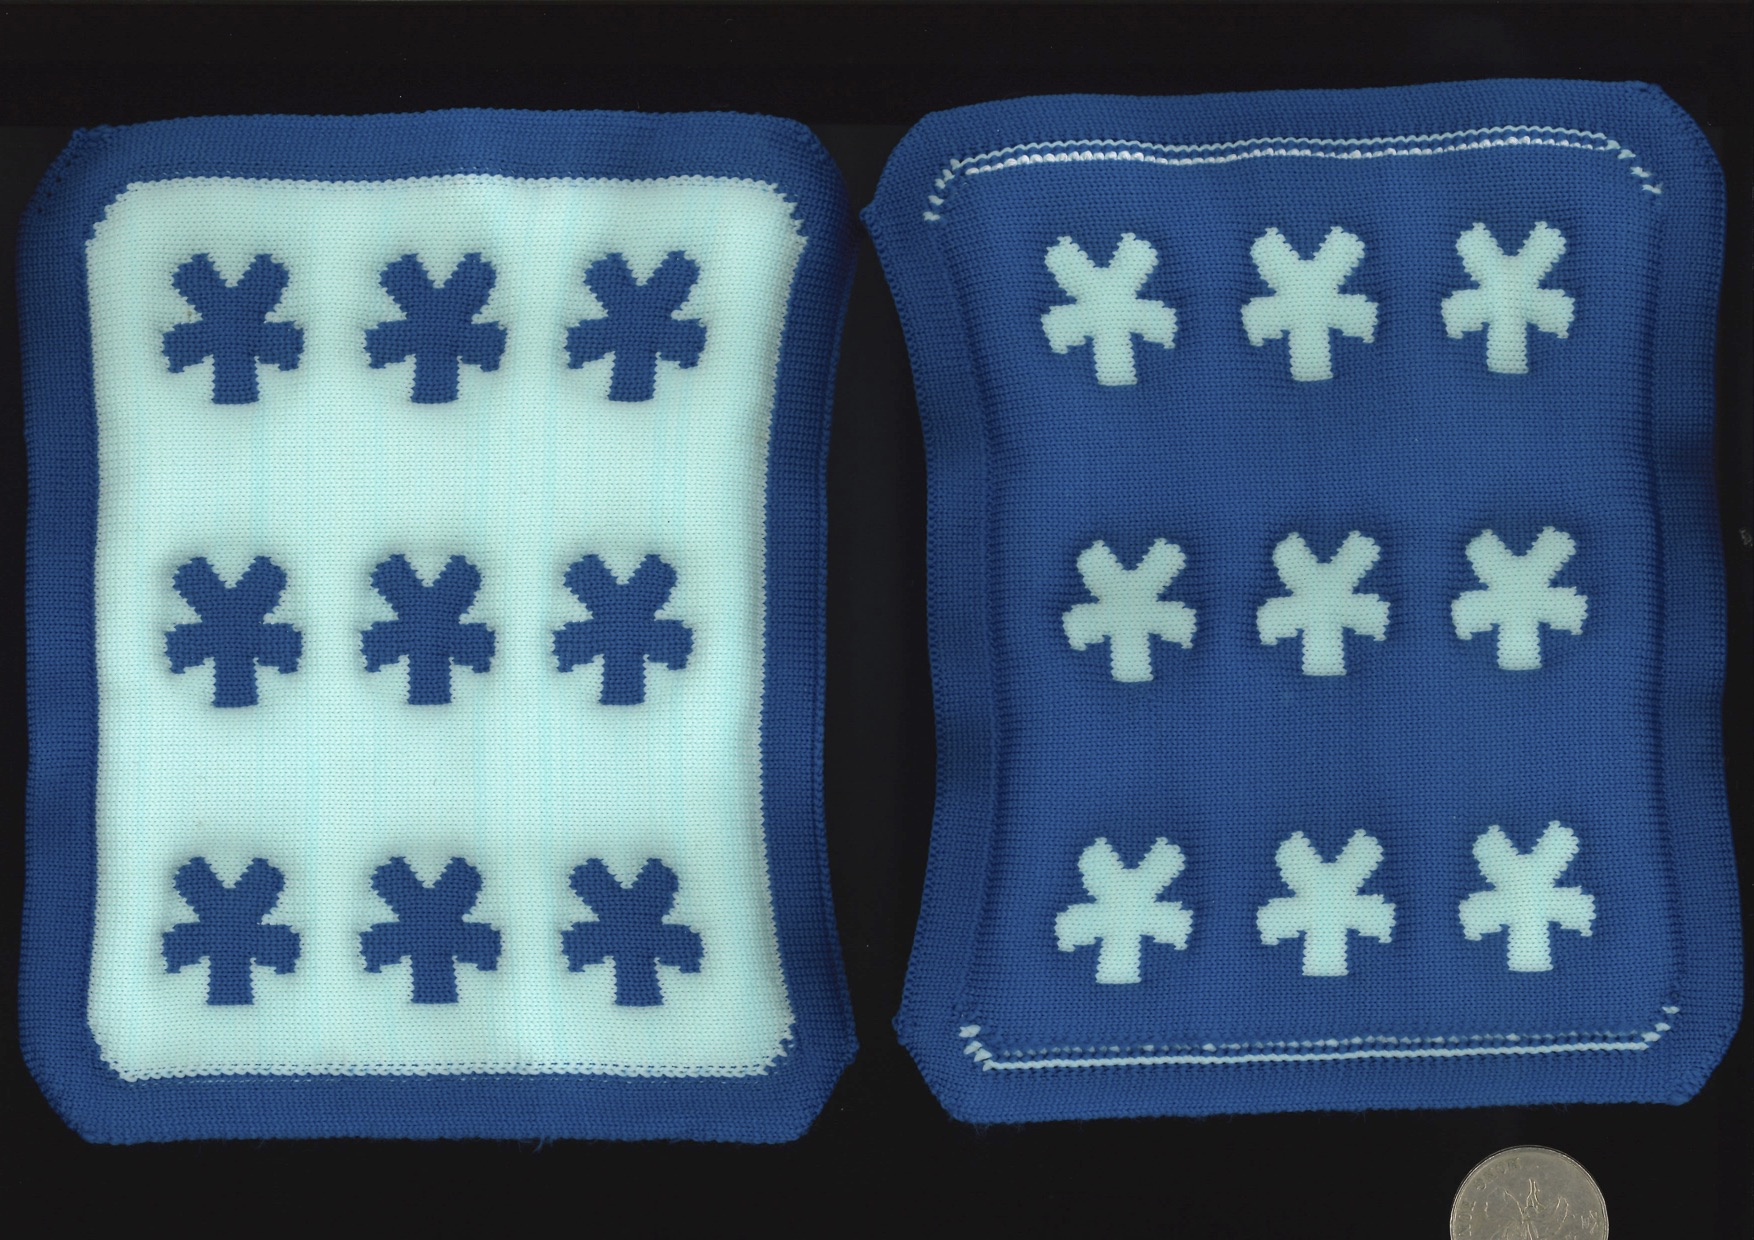 Two sample knit output. It is a knit design of 3 by 3 asterisk stars, with teal and prussian blue alternating with the background and stars. This design uses an embossing technique, so the design pattern can be felt in a tactile manner. The size of the samples are compared to a quarter coin.